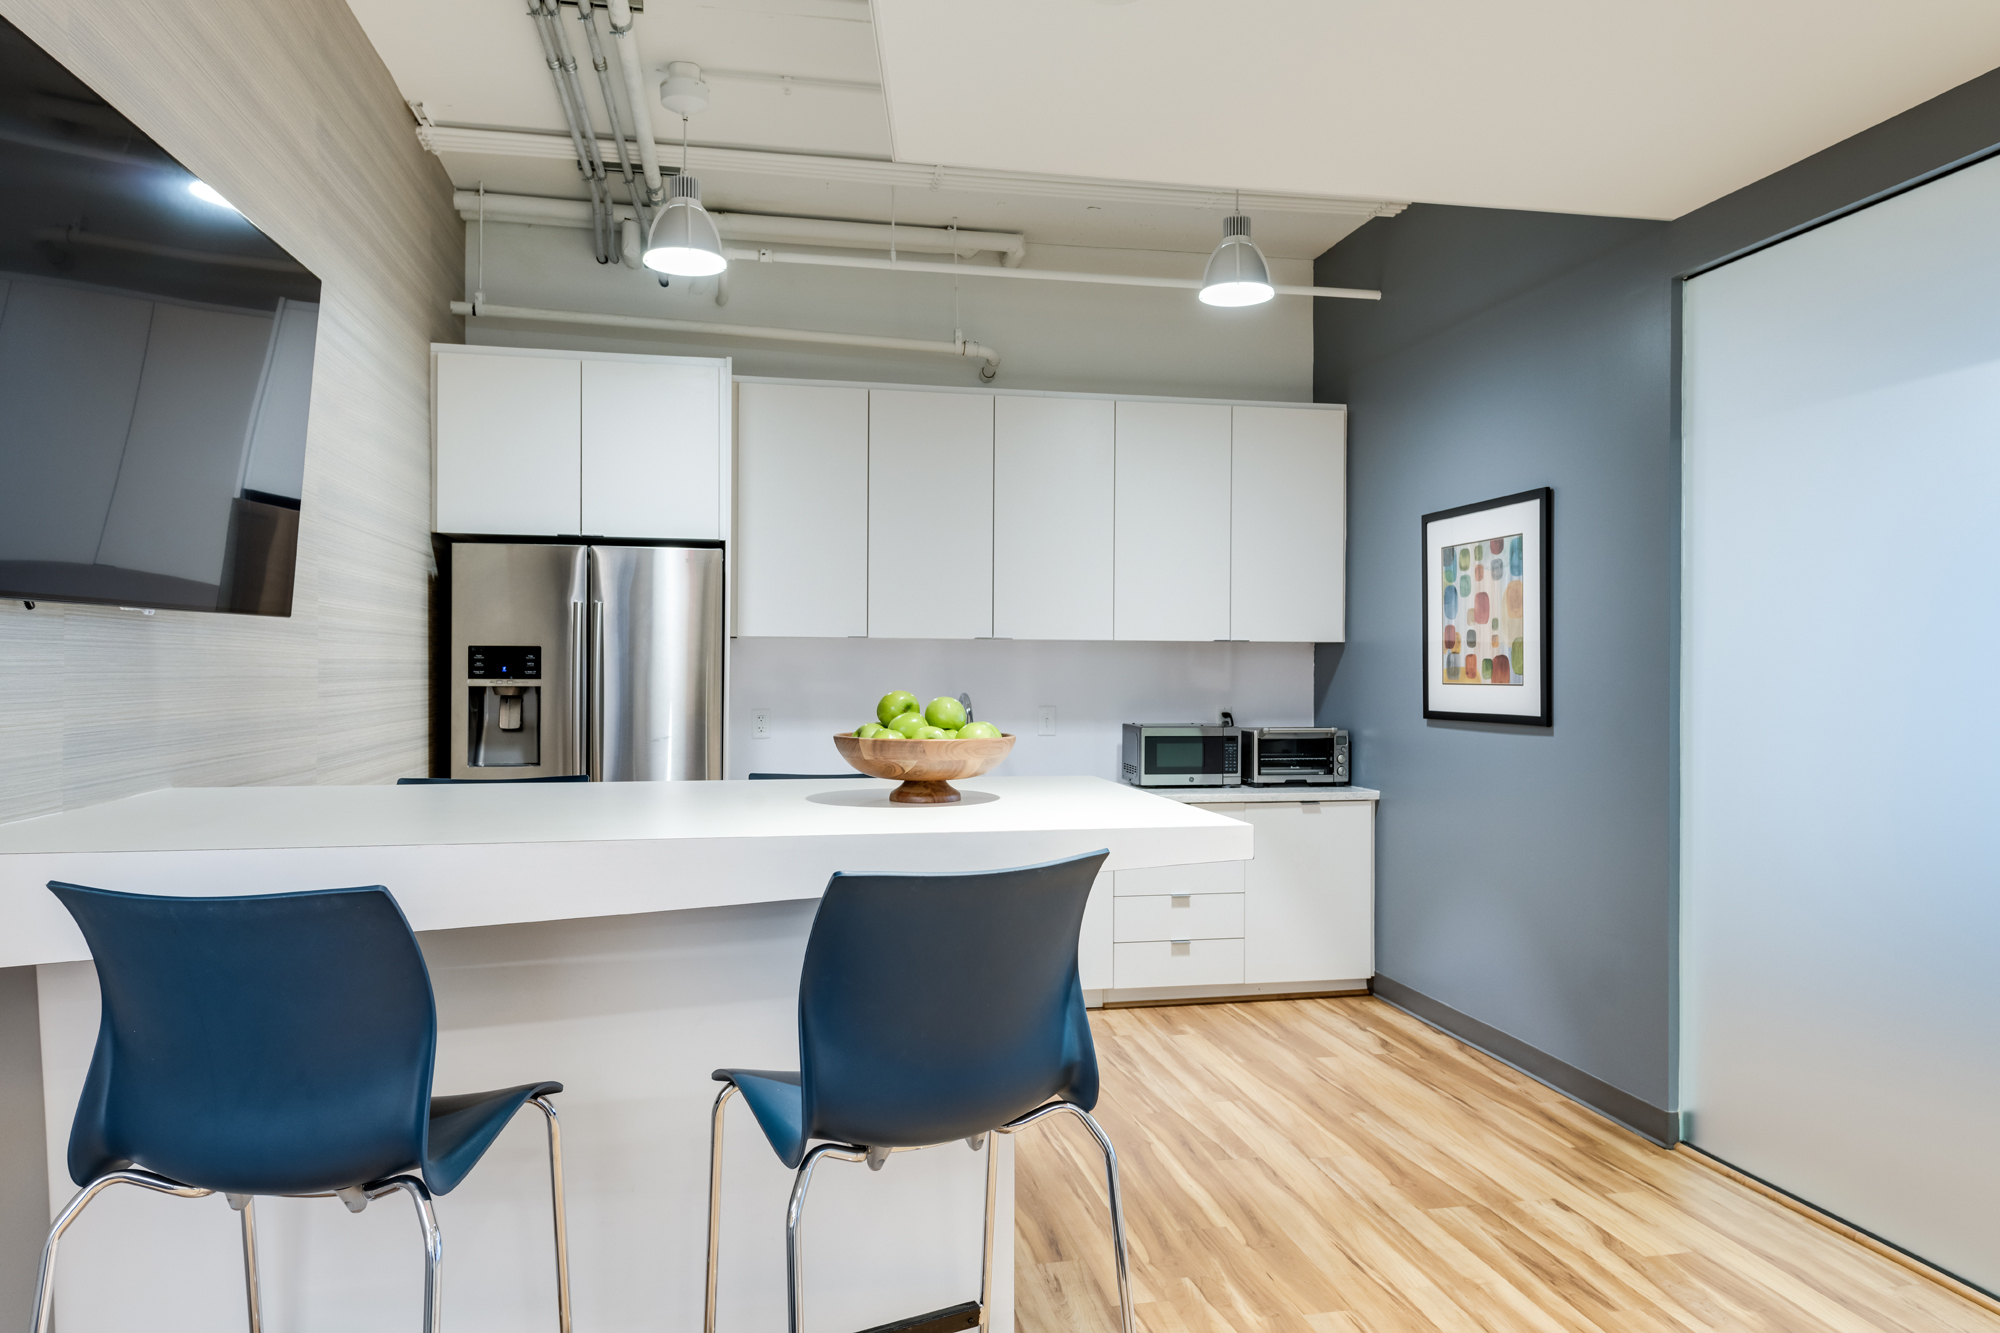 RestonOffice_CommercialDesign_Officekitchen3.jpg